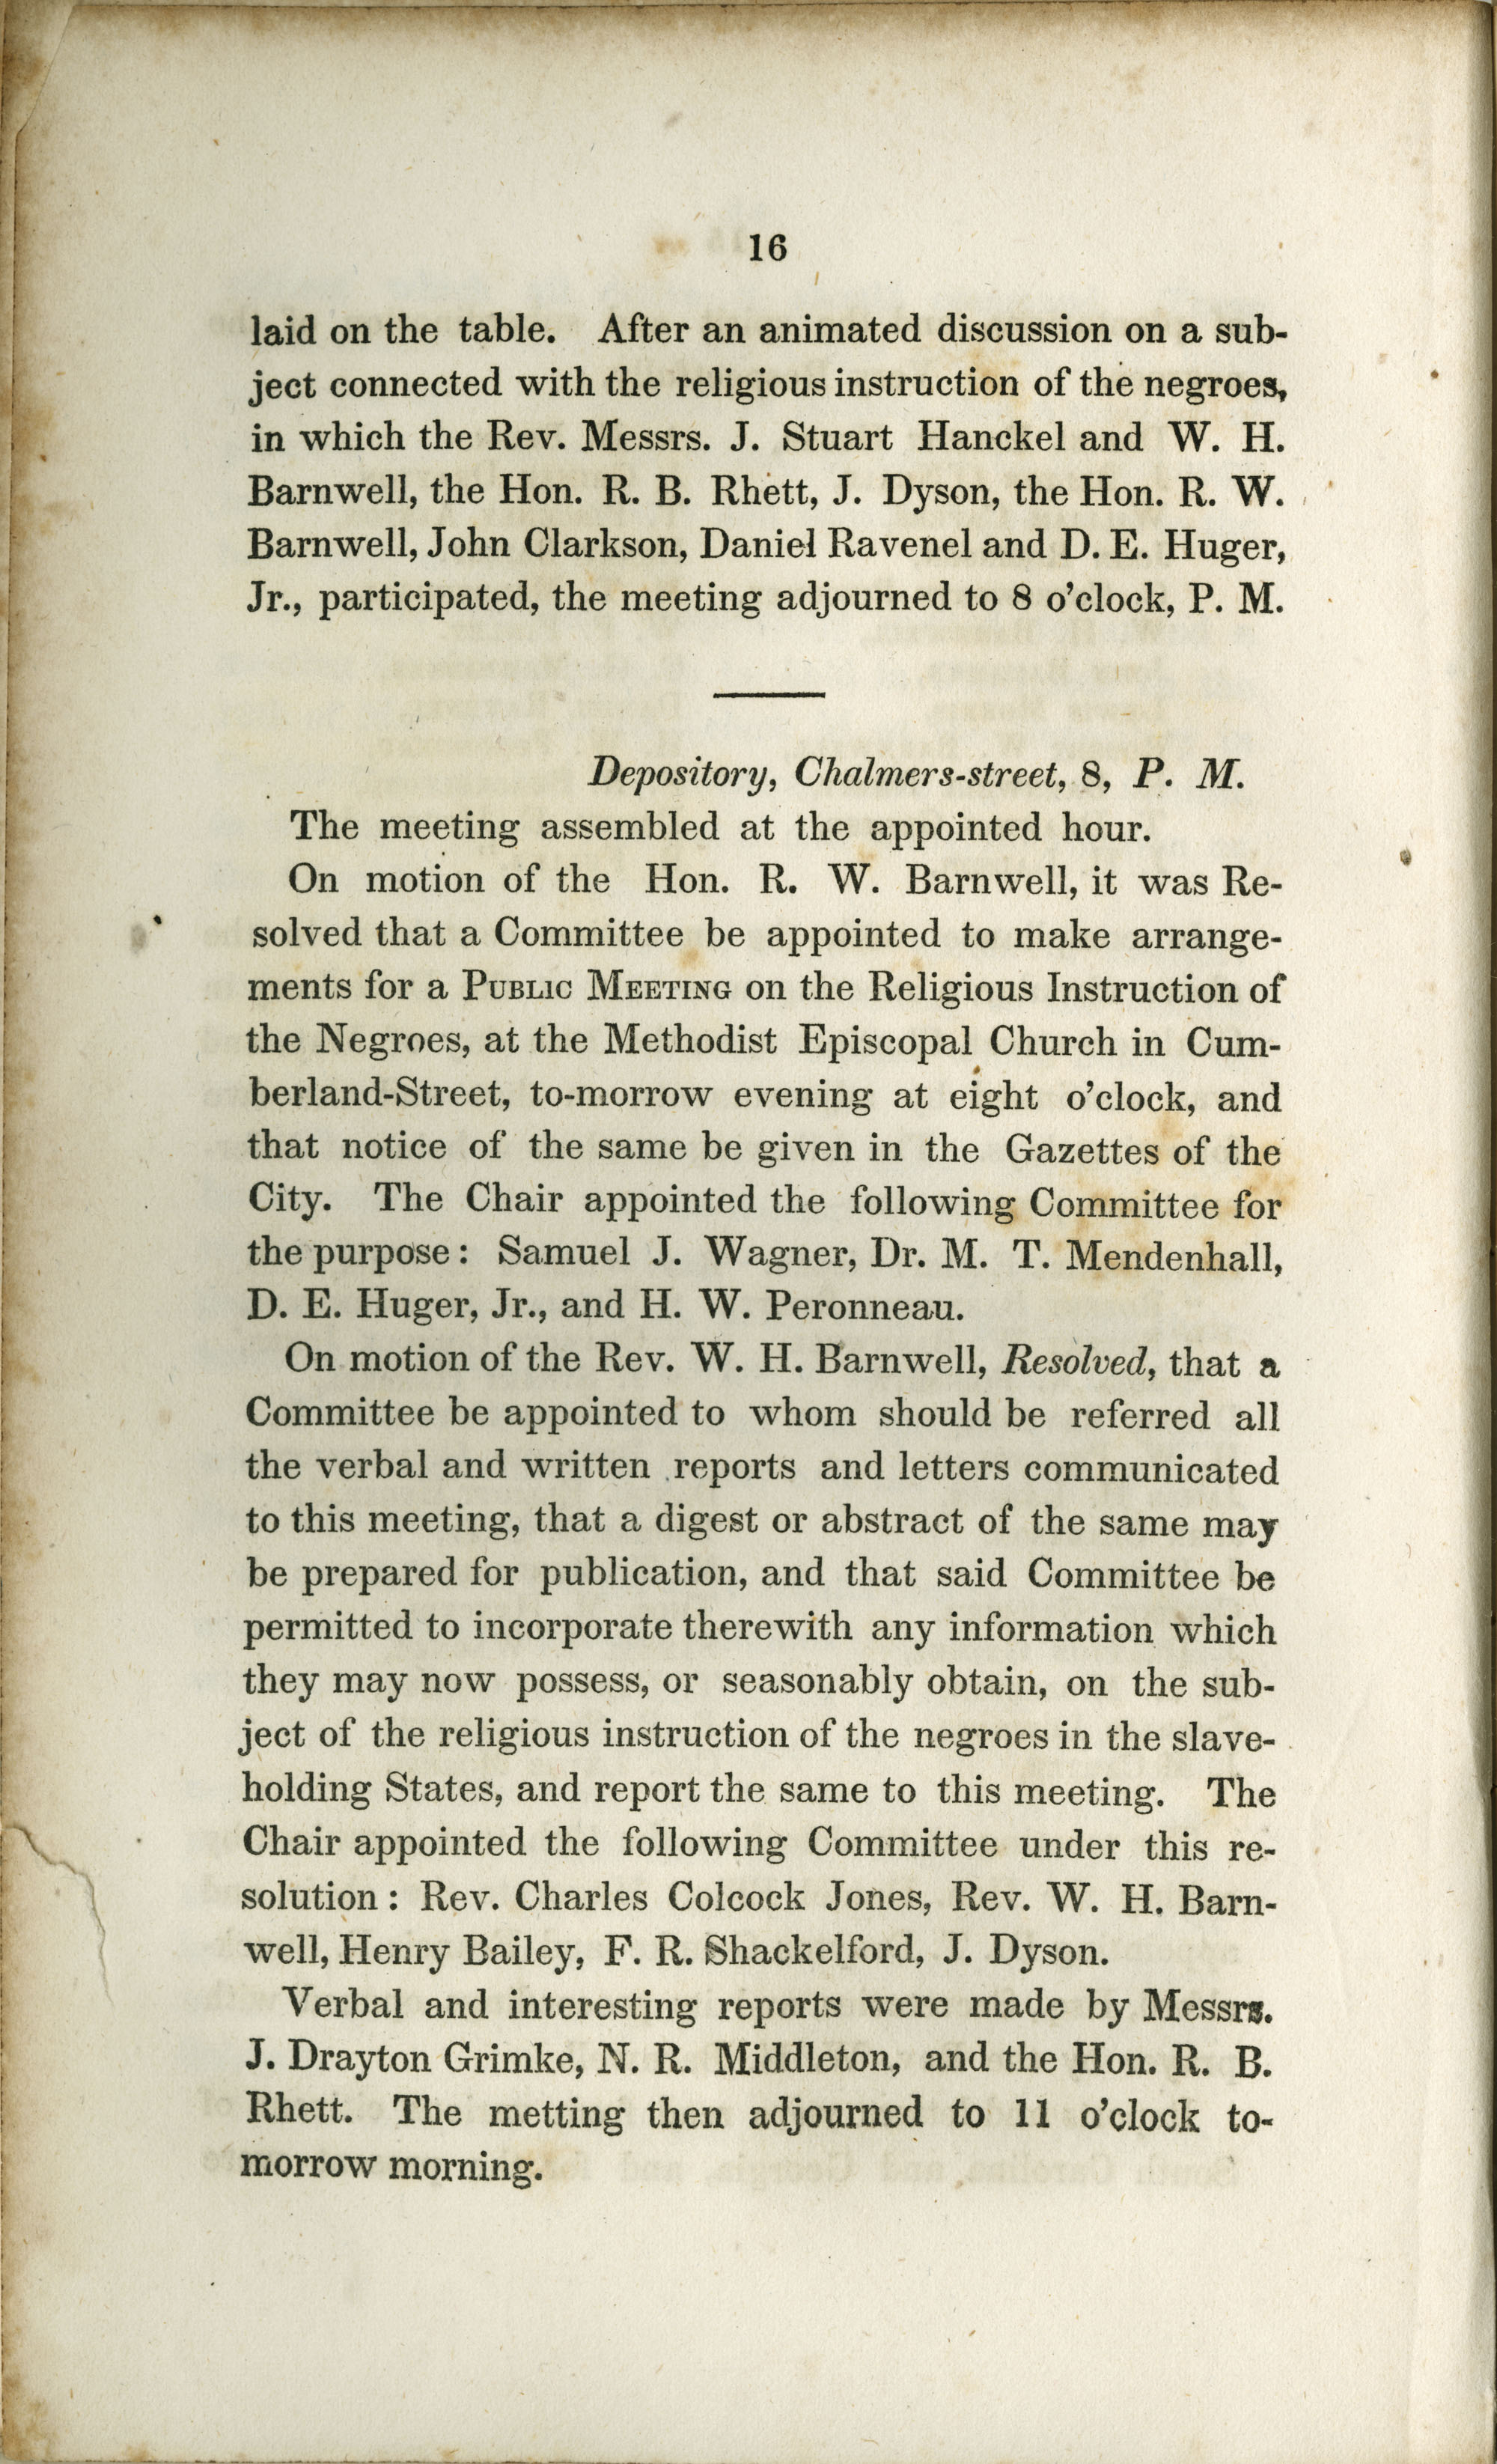 Proceedings of the Meeting, Page 16